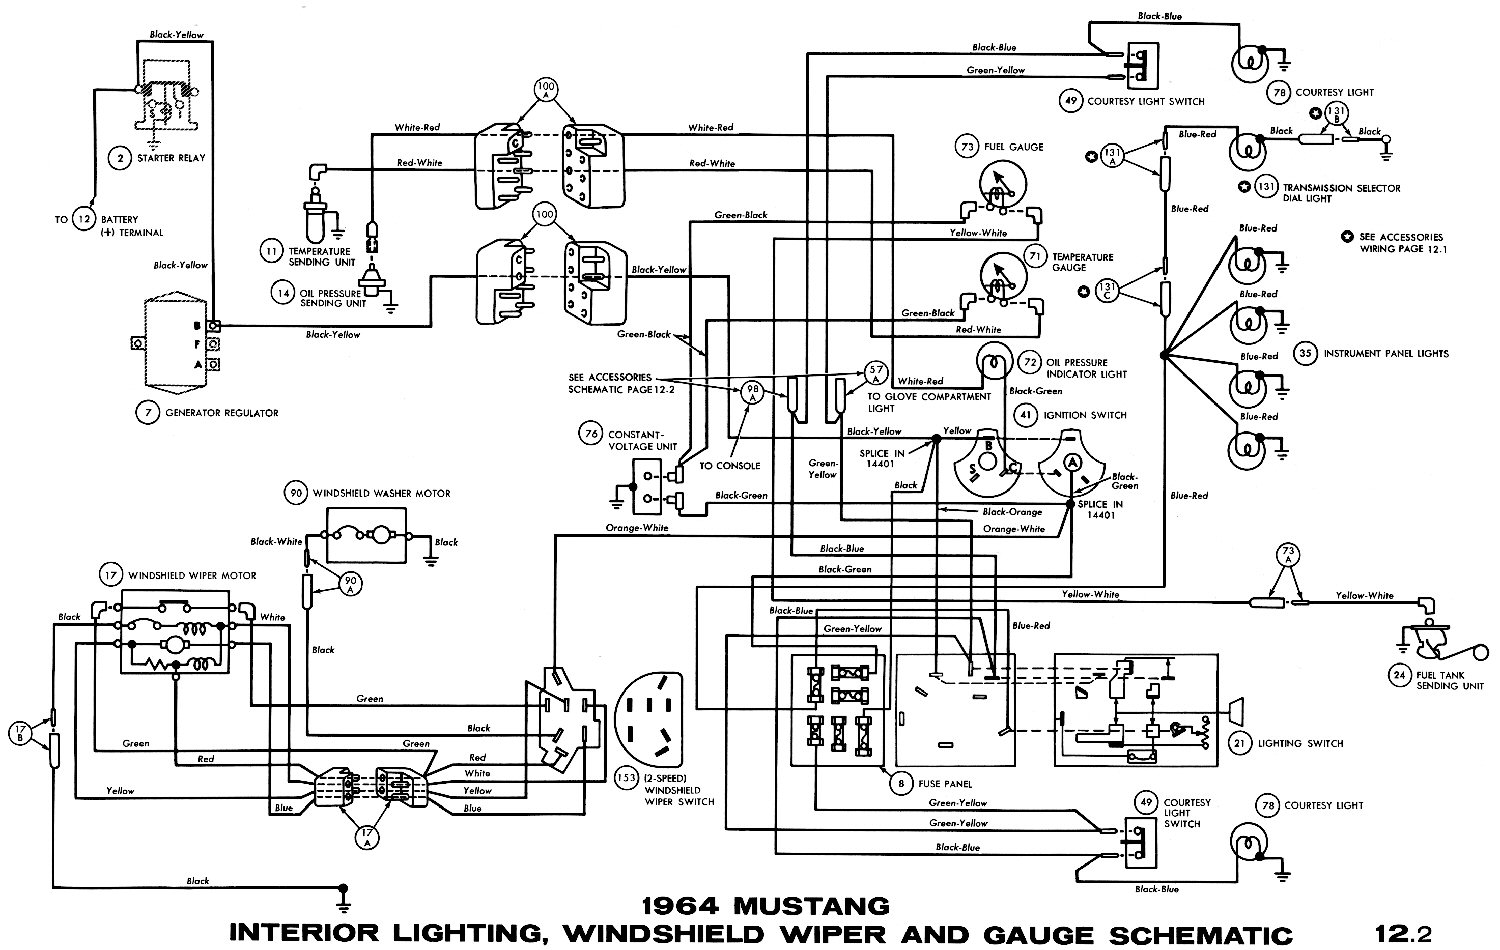 1964k 66 mustang wiring diagram online 65 ford mustang wiring diagram 1965 ford mustang wiring diagrams at suagrazia.org